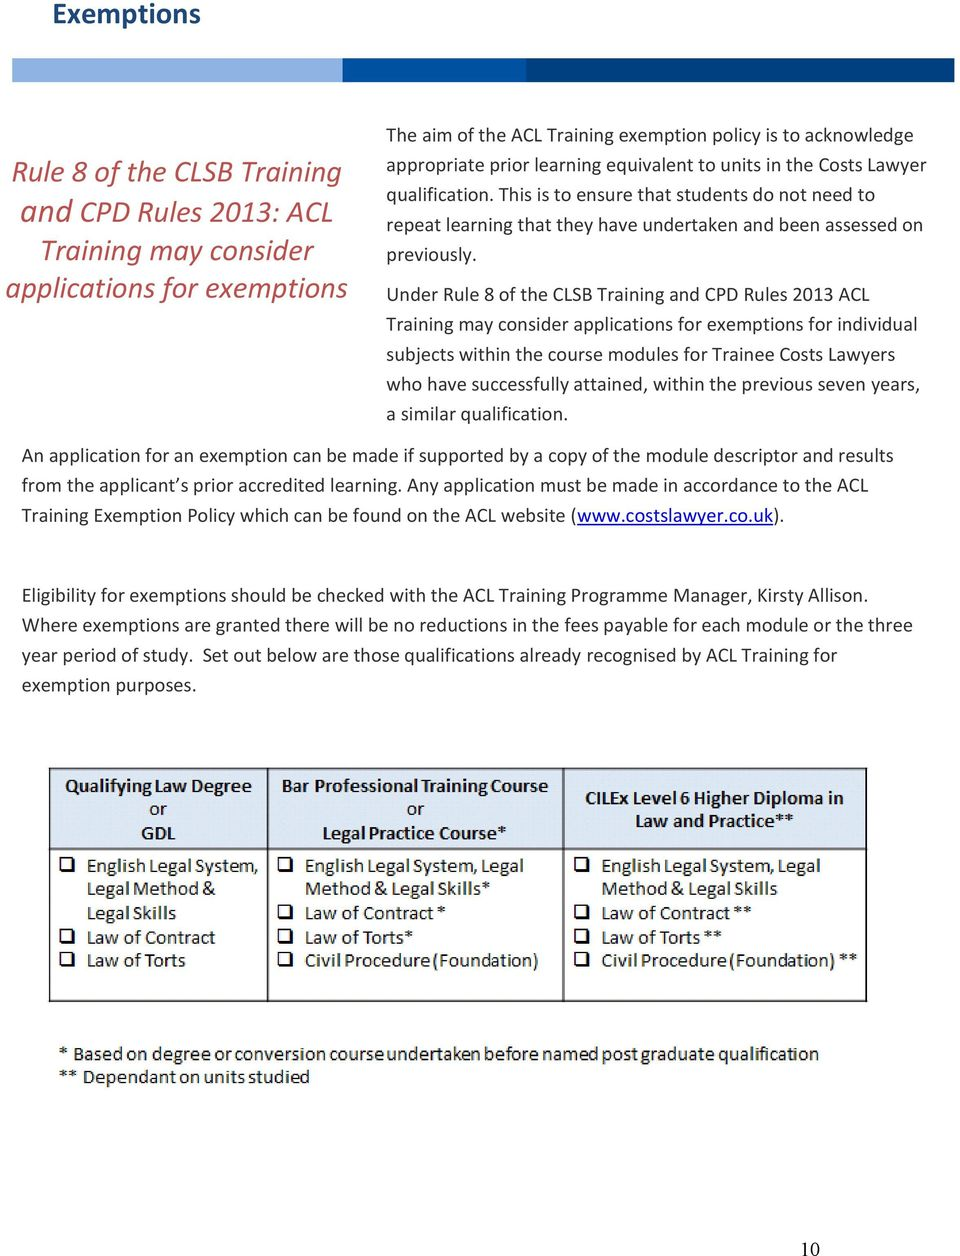 Under Rule 8 of the CLSB Training and CPD Rules 2013 ACL Training may consider applications for exemptions for individual subjects within the course modules for Trainee Costs Lawyers who have